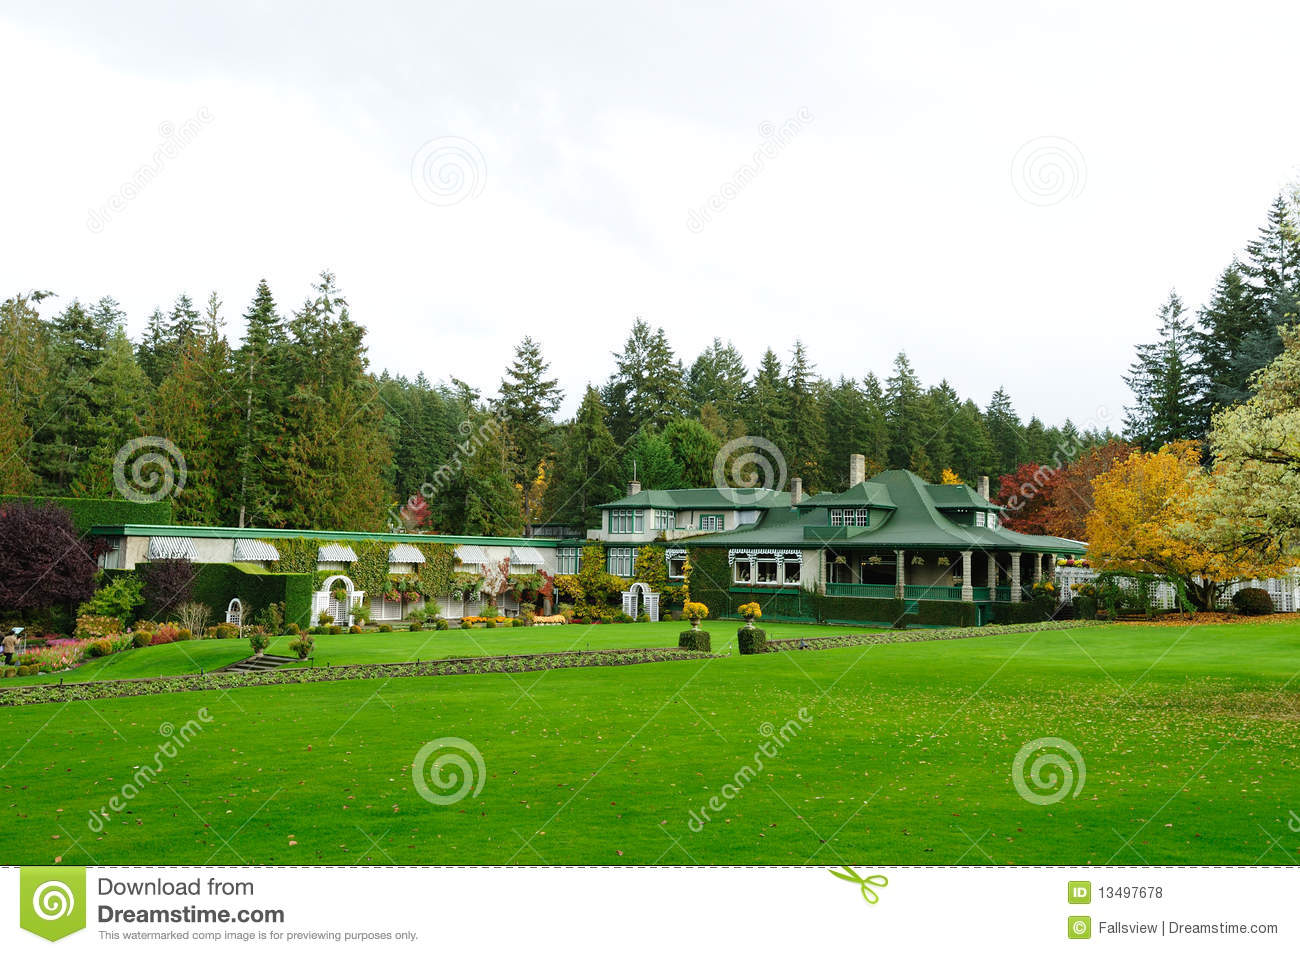 Garden house royalty free stock photos image 13497678 for Garden shed victoria bc